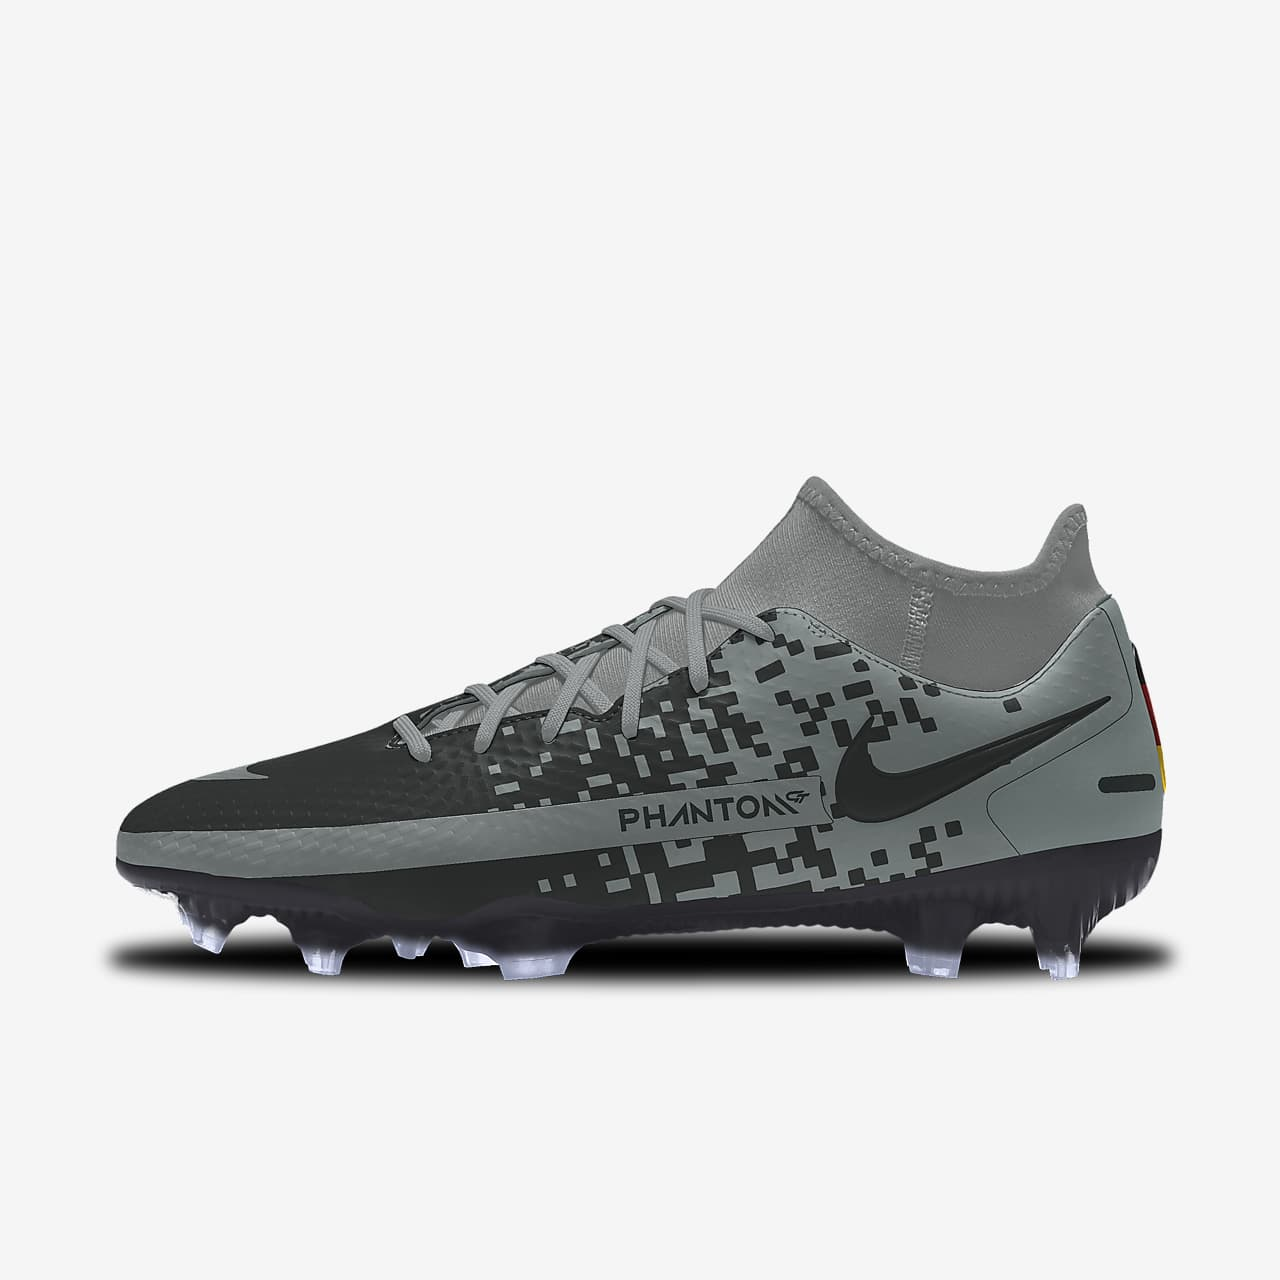 Nike Phantom GT Academy By You Custom Multi-Ground Football Boot